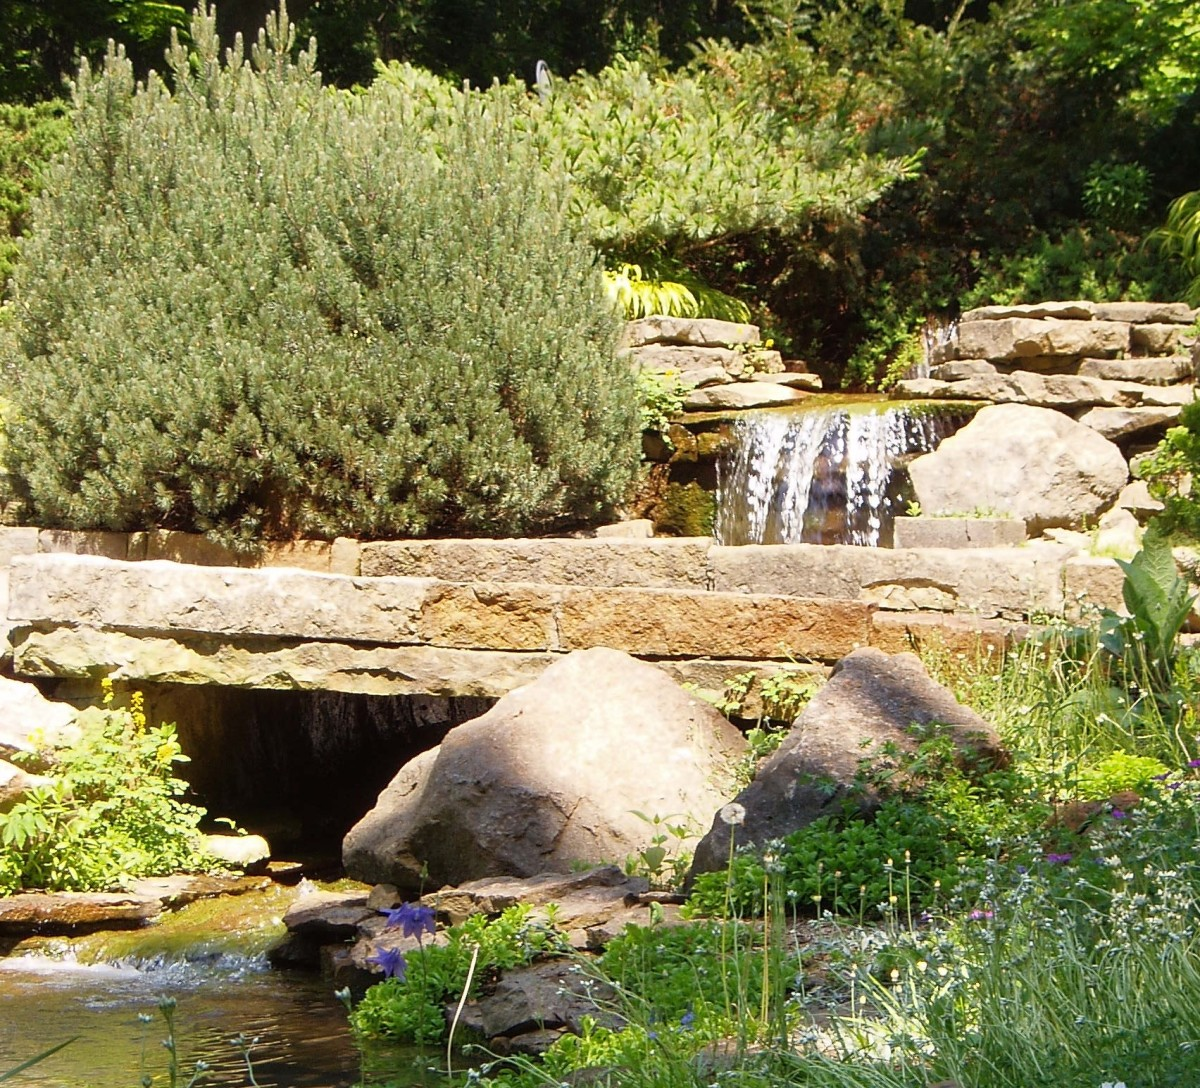 A view of the waterfall in the rock garden at Inniswoods Metro Gardens.